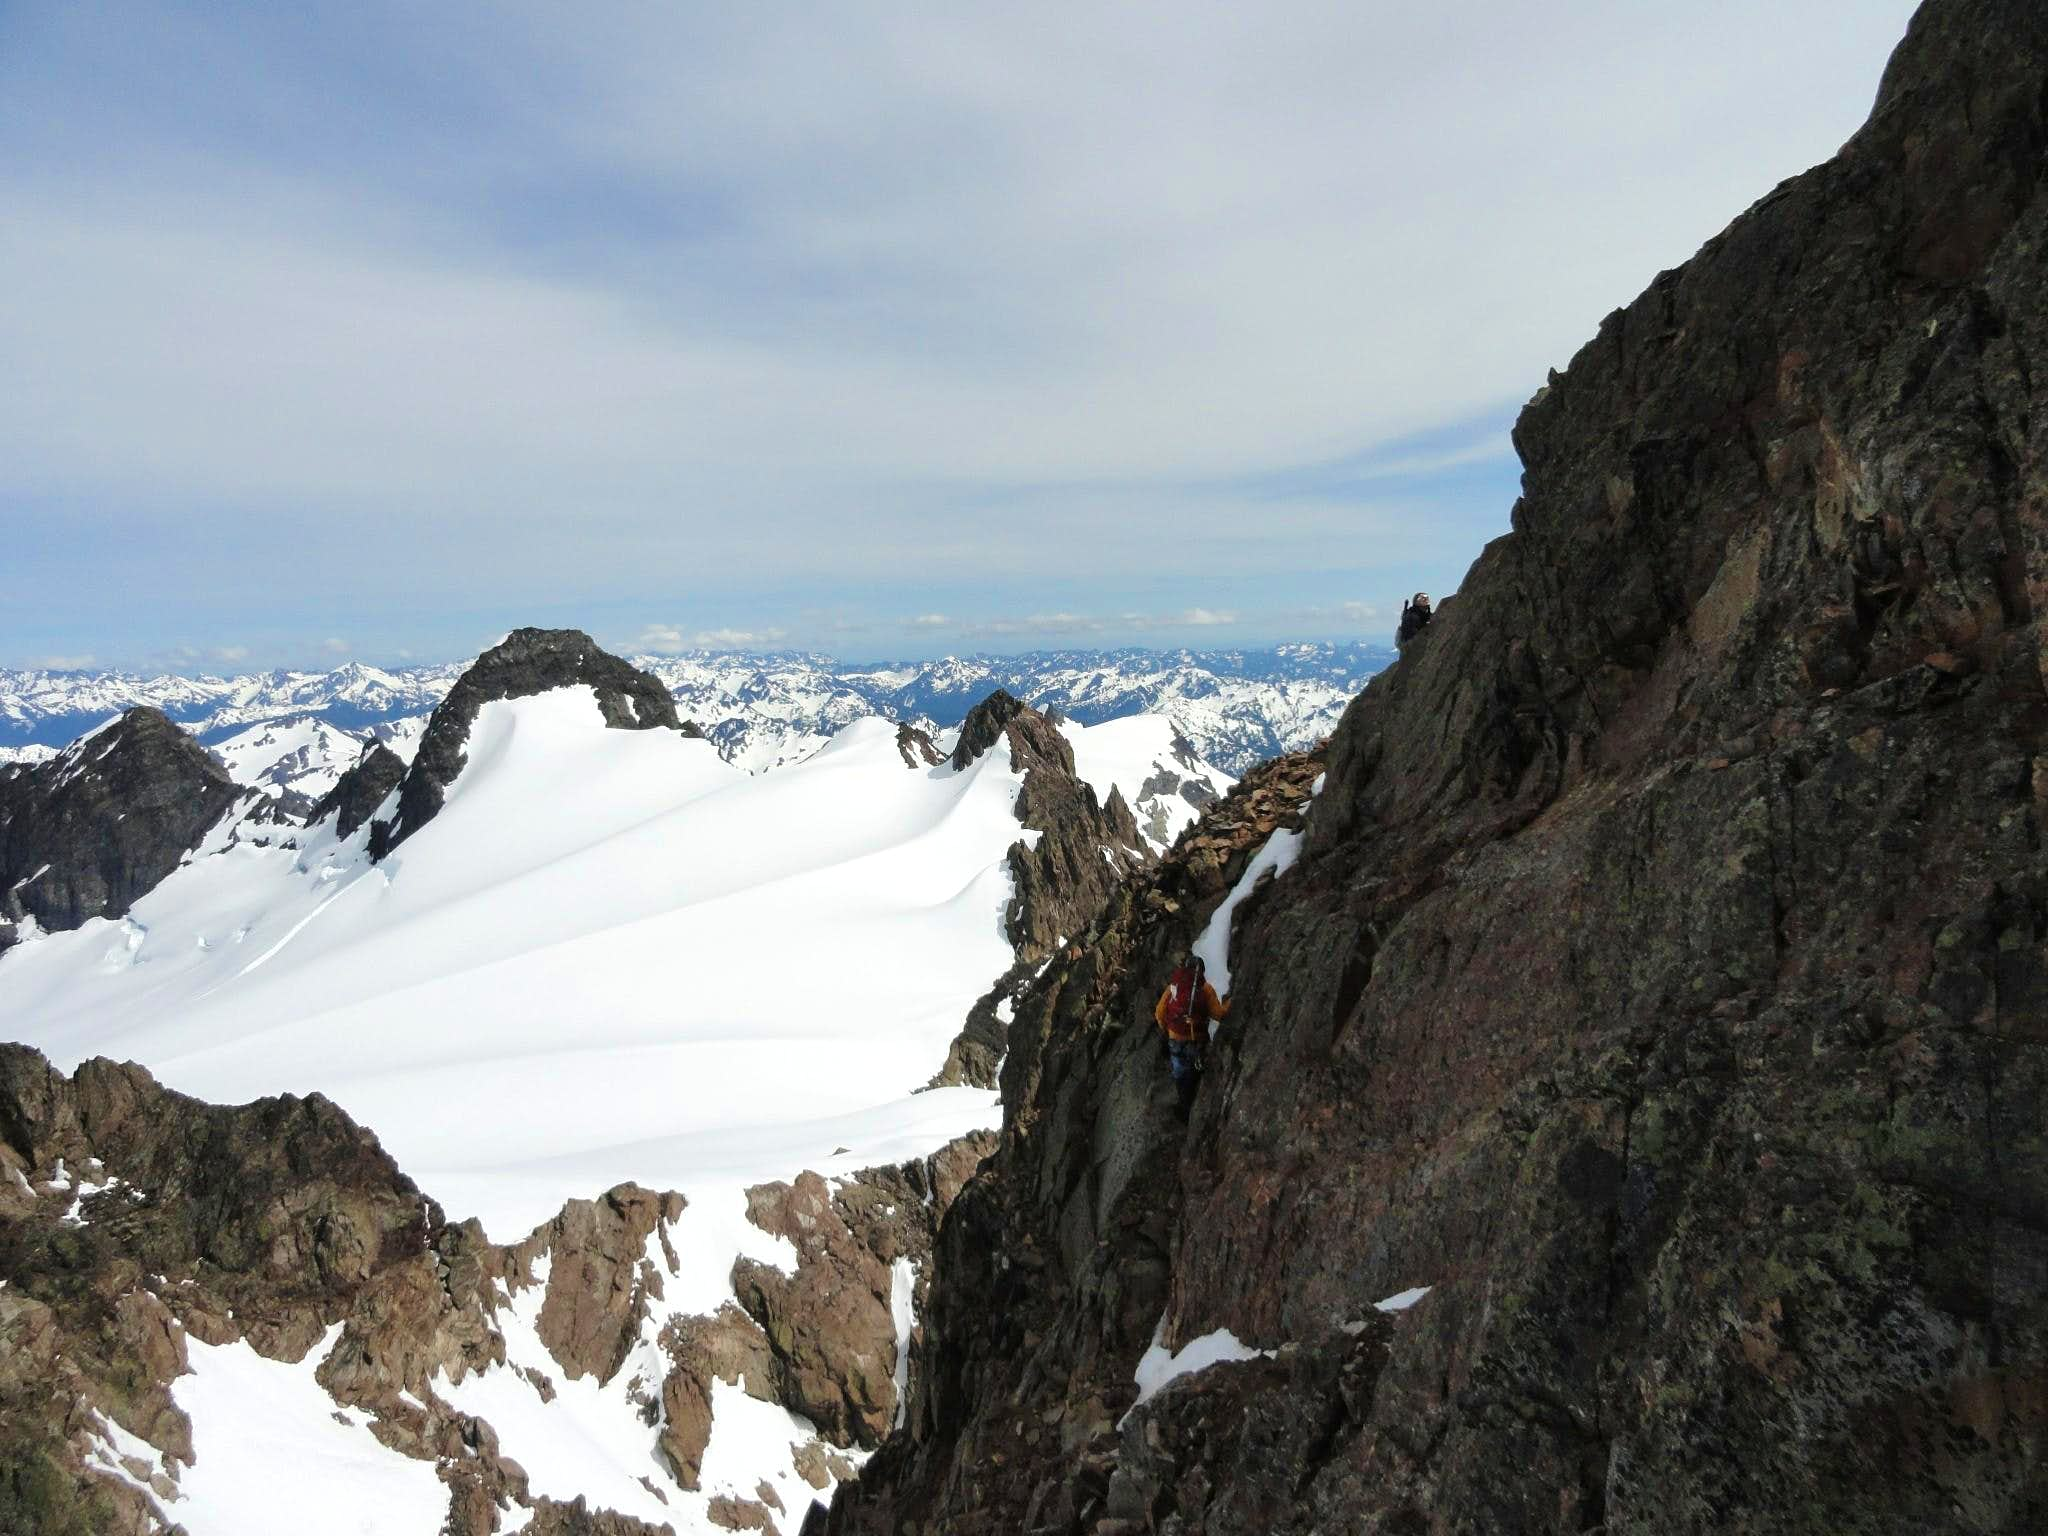 olymountainman